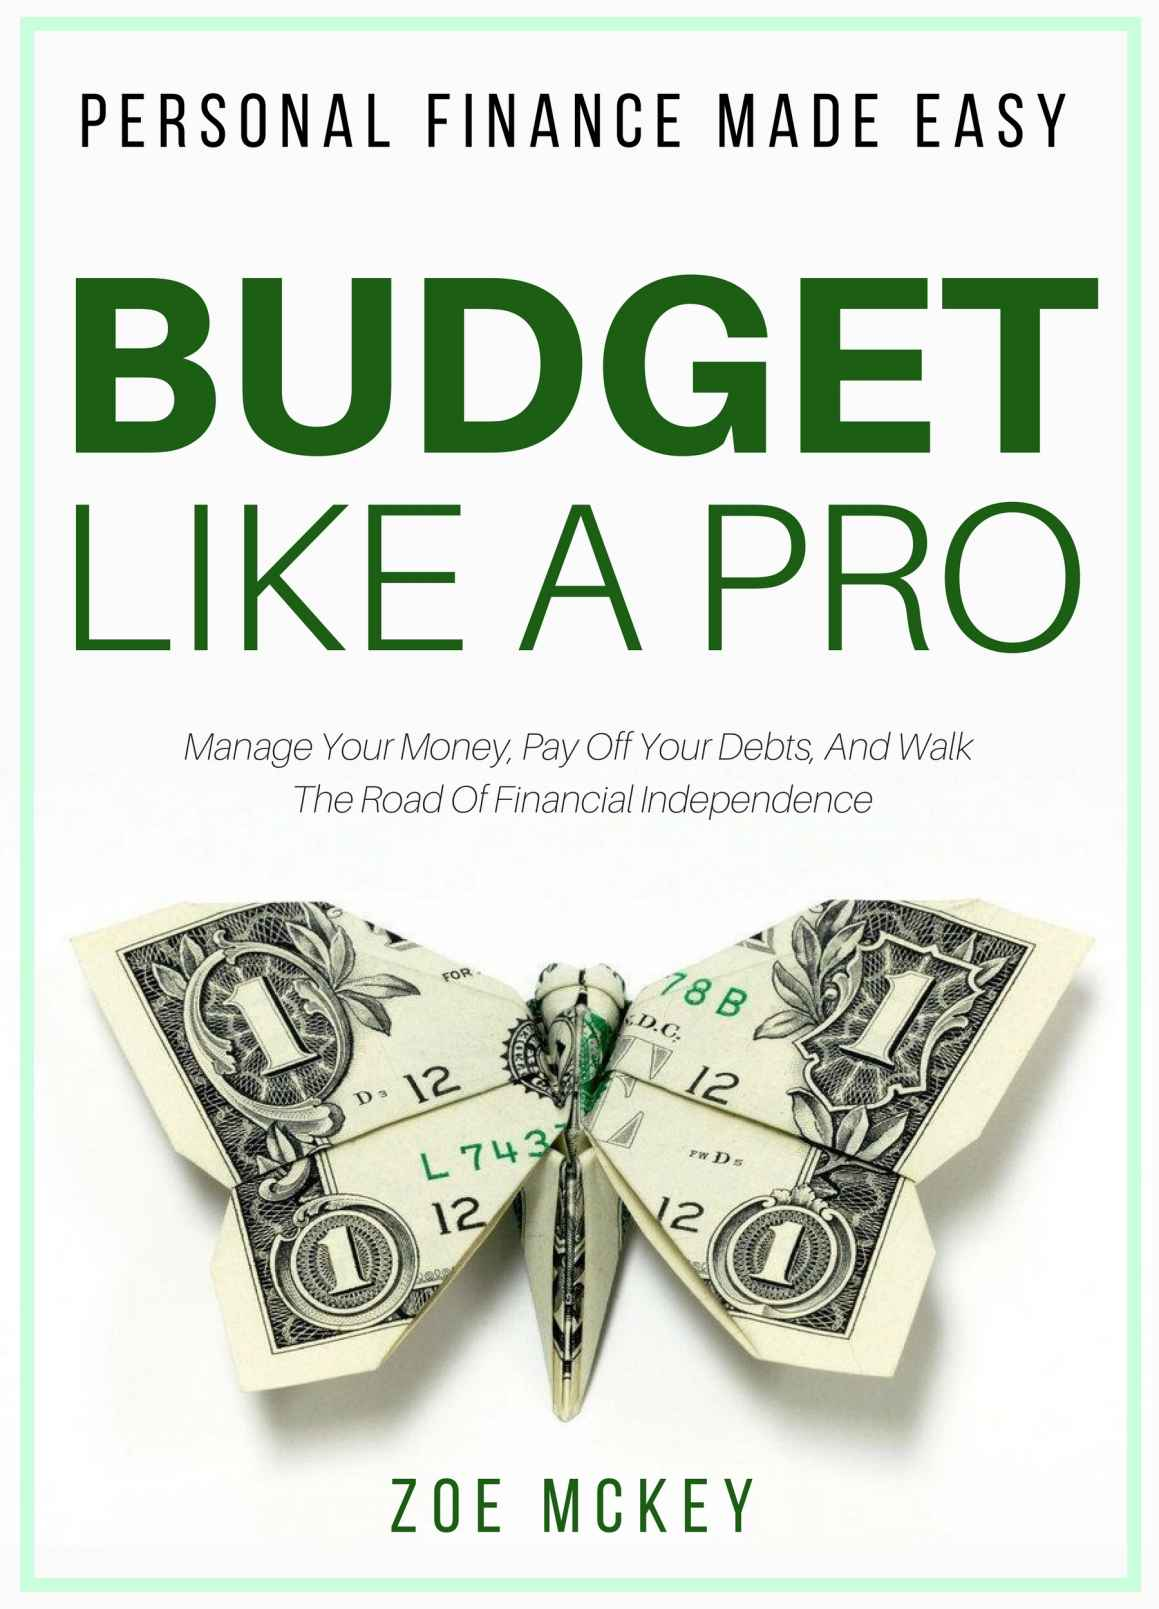 Budget Like A Pro: Manage Your Money, Pay Off Your Debts, And Walk The Road Of Financial Independence - Personal Finance Made Easy, kirjoittanut Zoe McKey - kirjan kansikuva